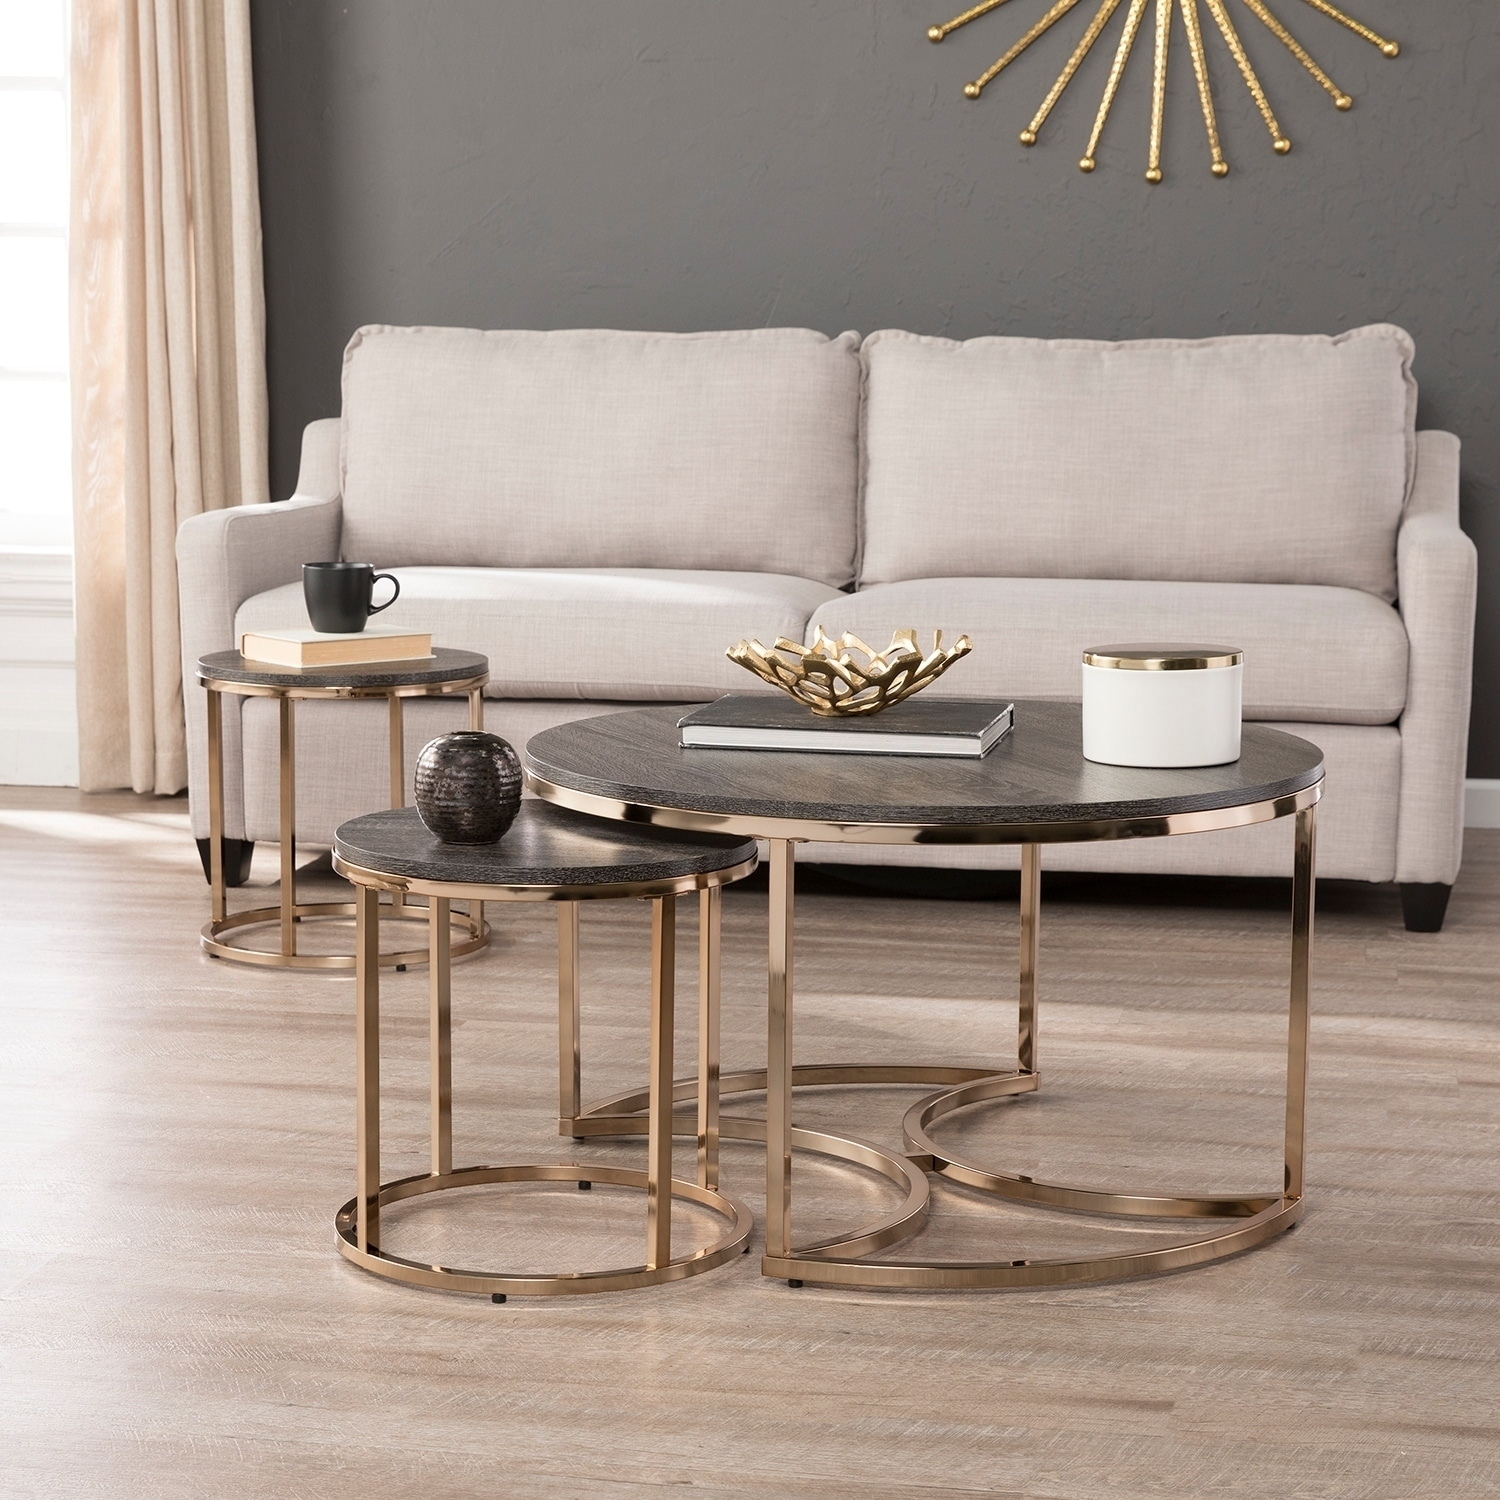 Shop Harper Blvd Belle Round 3-piece Nesting Coffee Table Set - Free ...